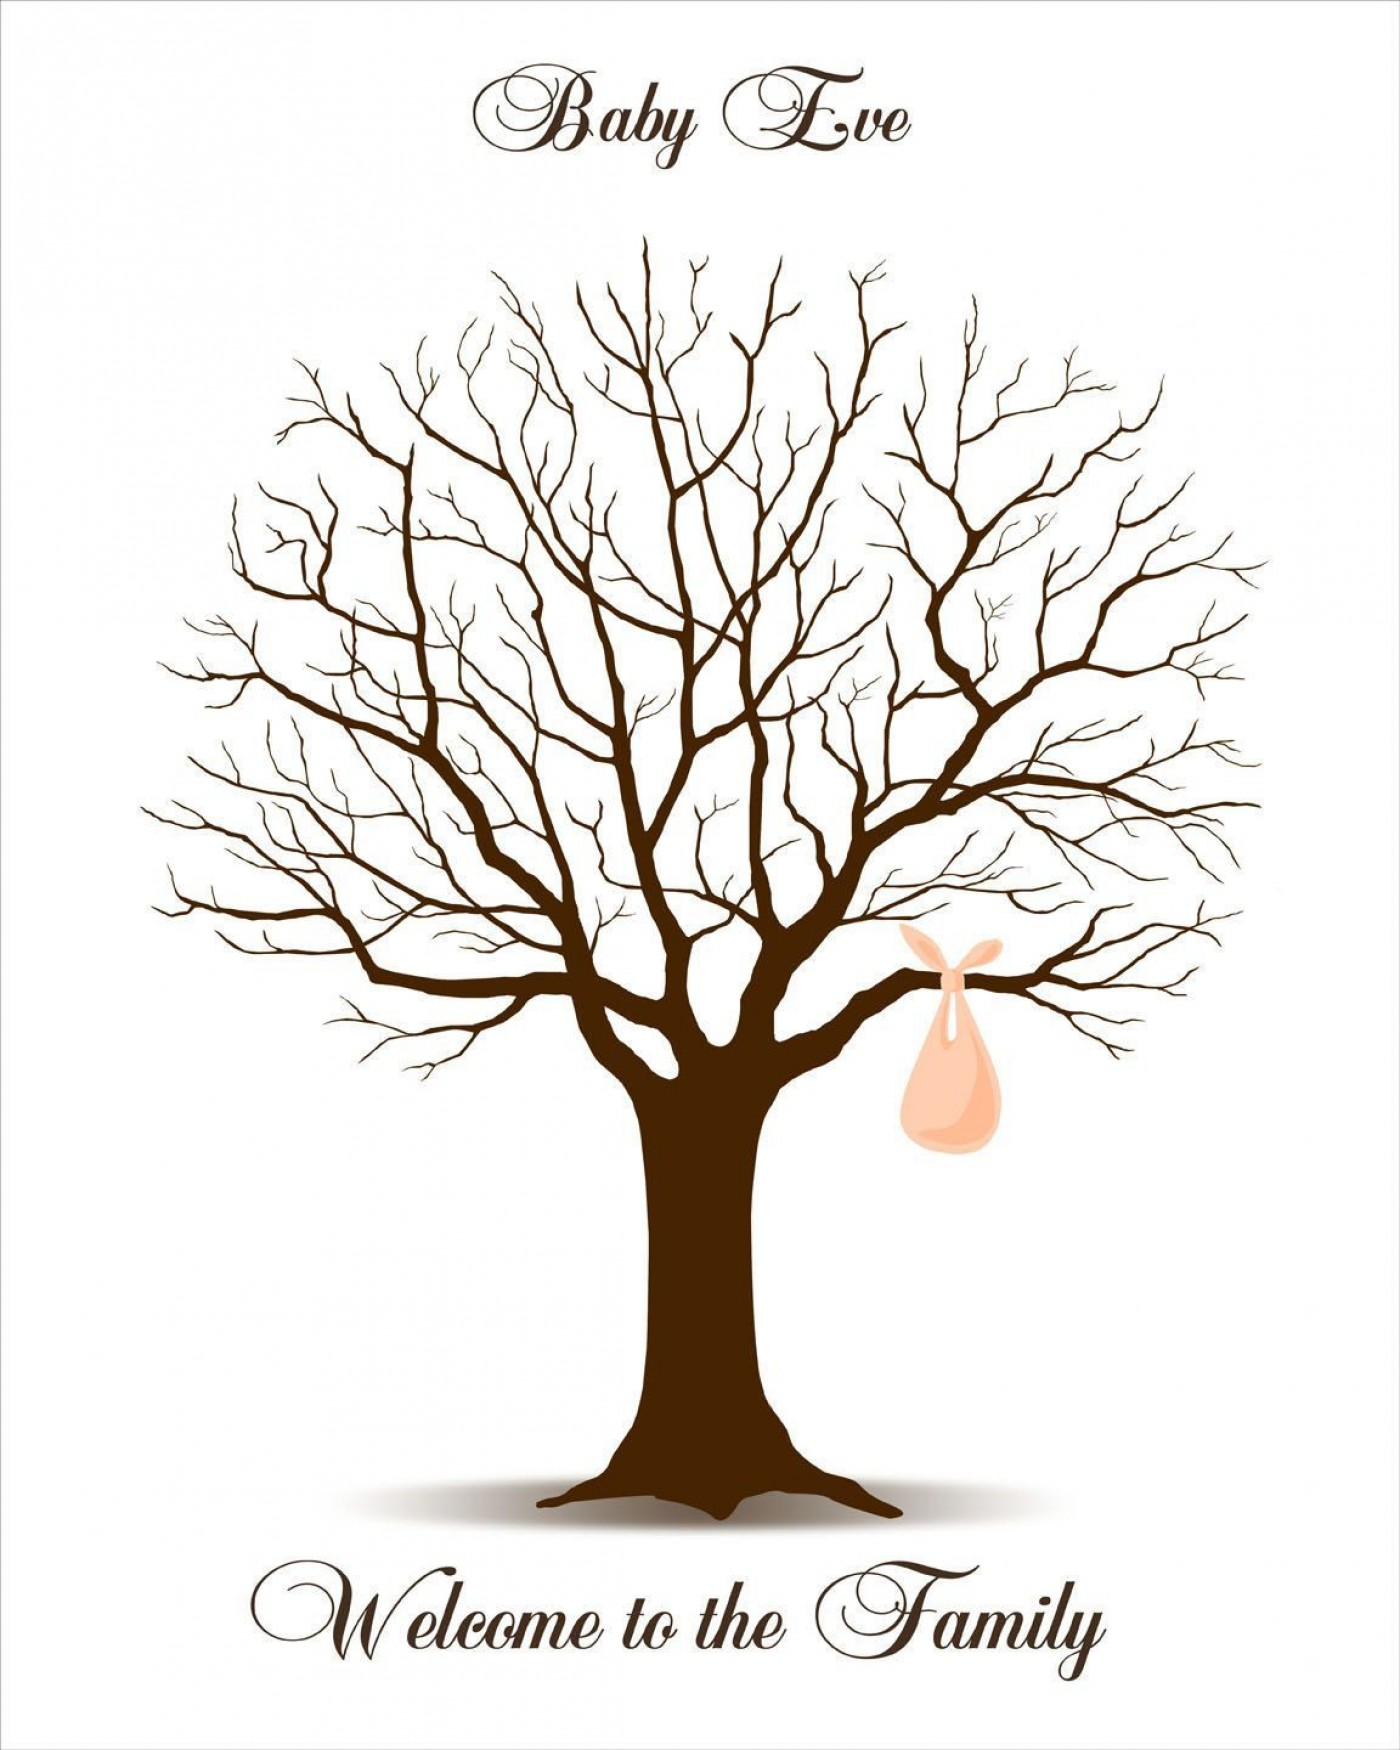 009 Rare Family Tree For Baby Book Template High Def  Printable1400